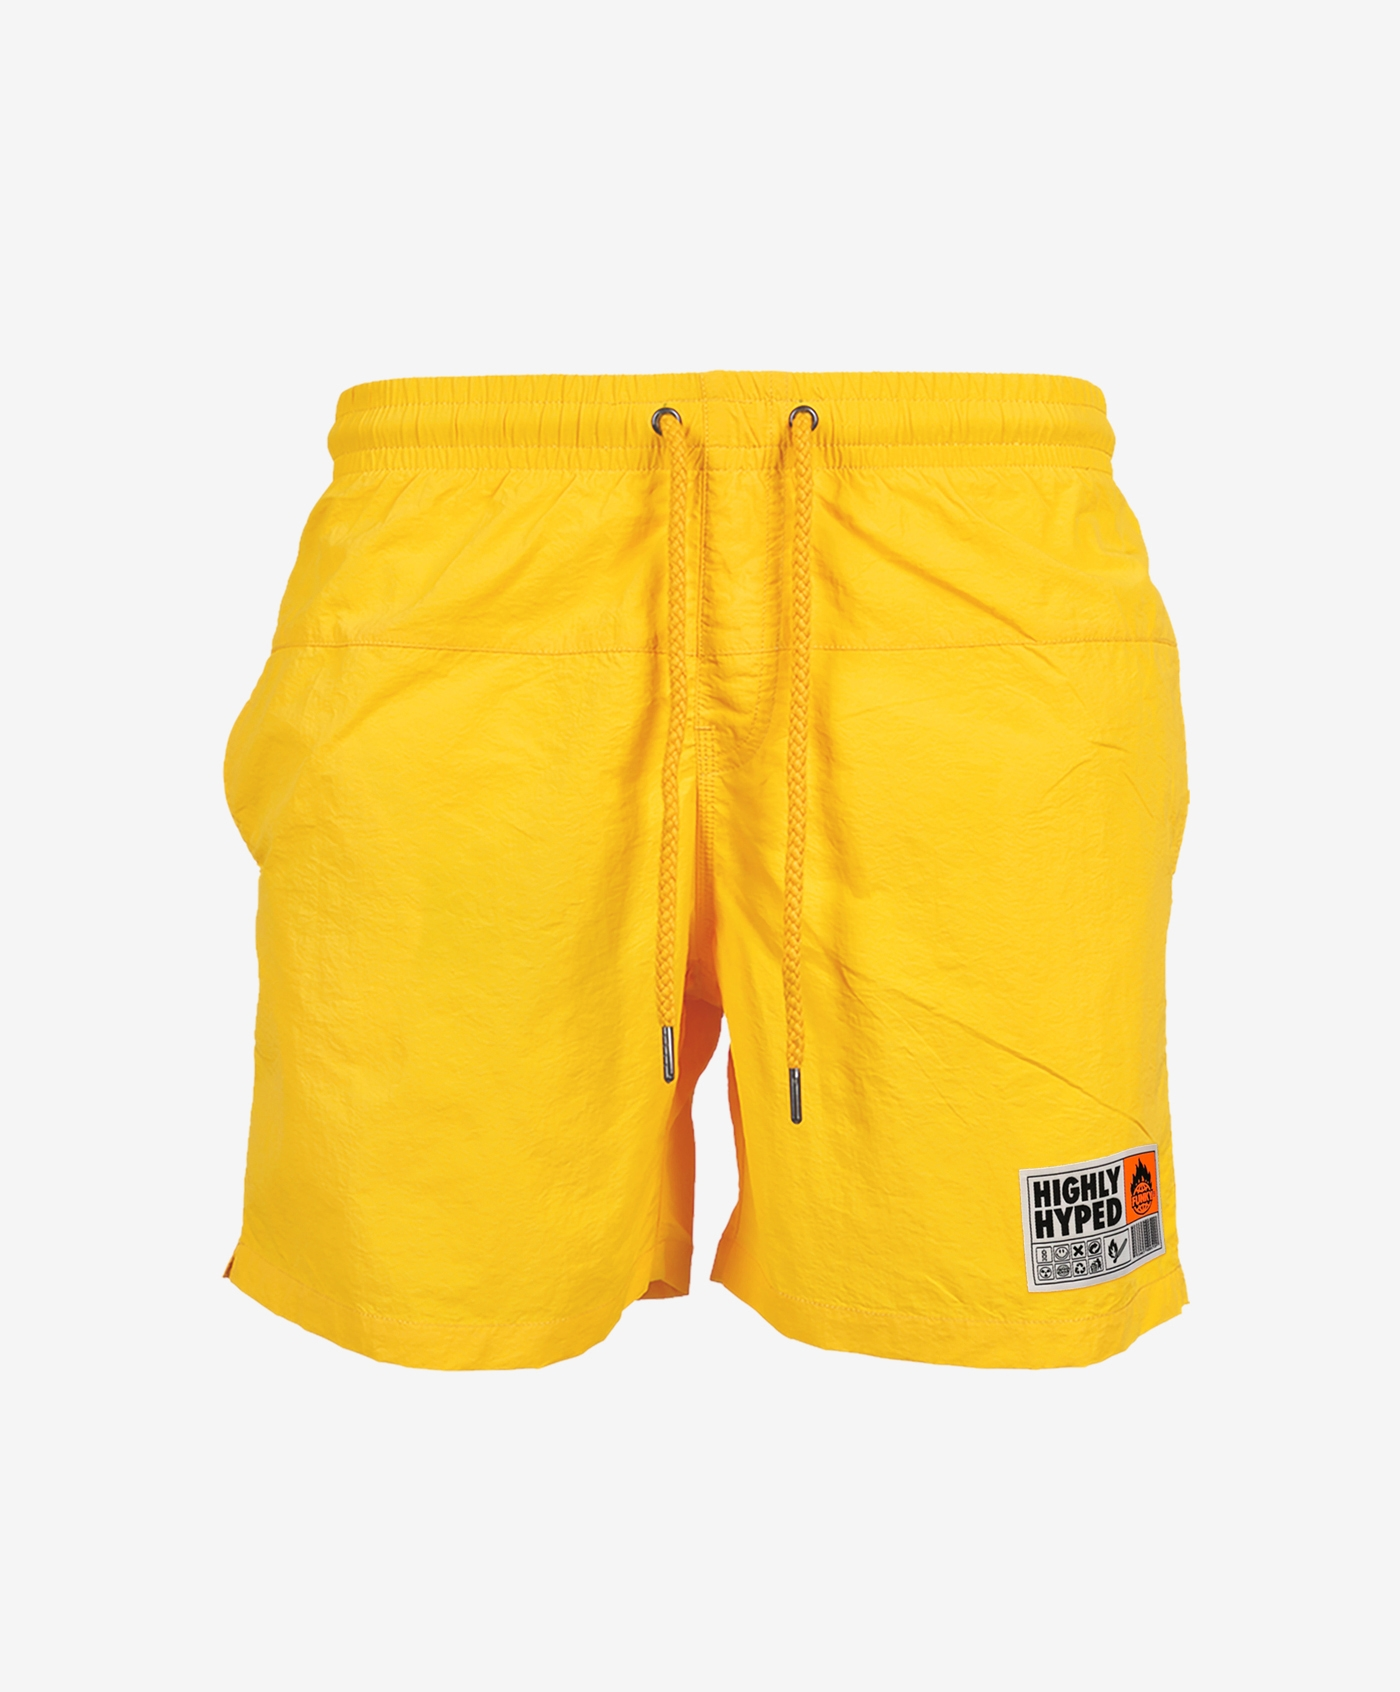 funky-hype-shorts-yellow-front